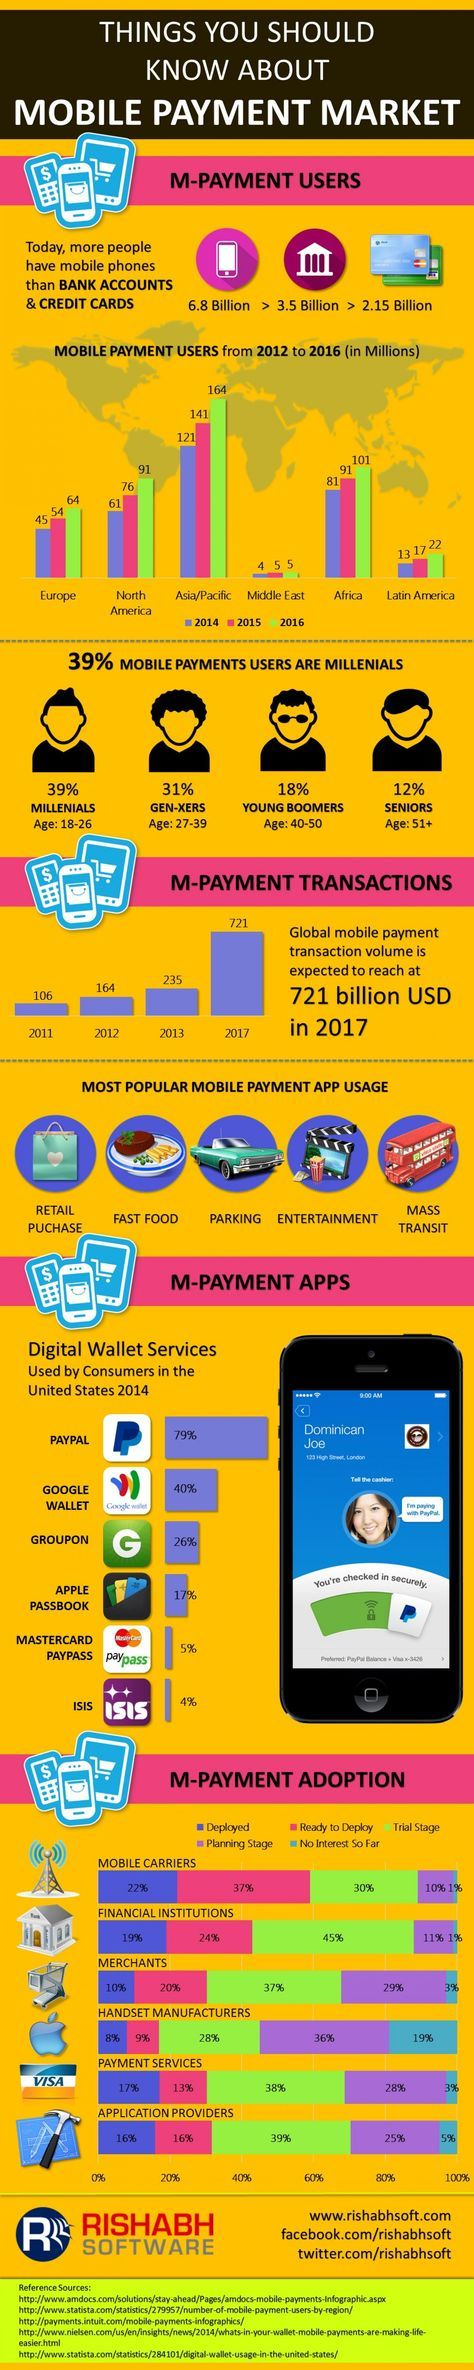 Things You Should Know About Mobile Payment Market